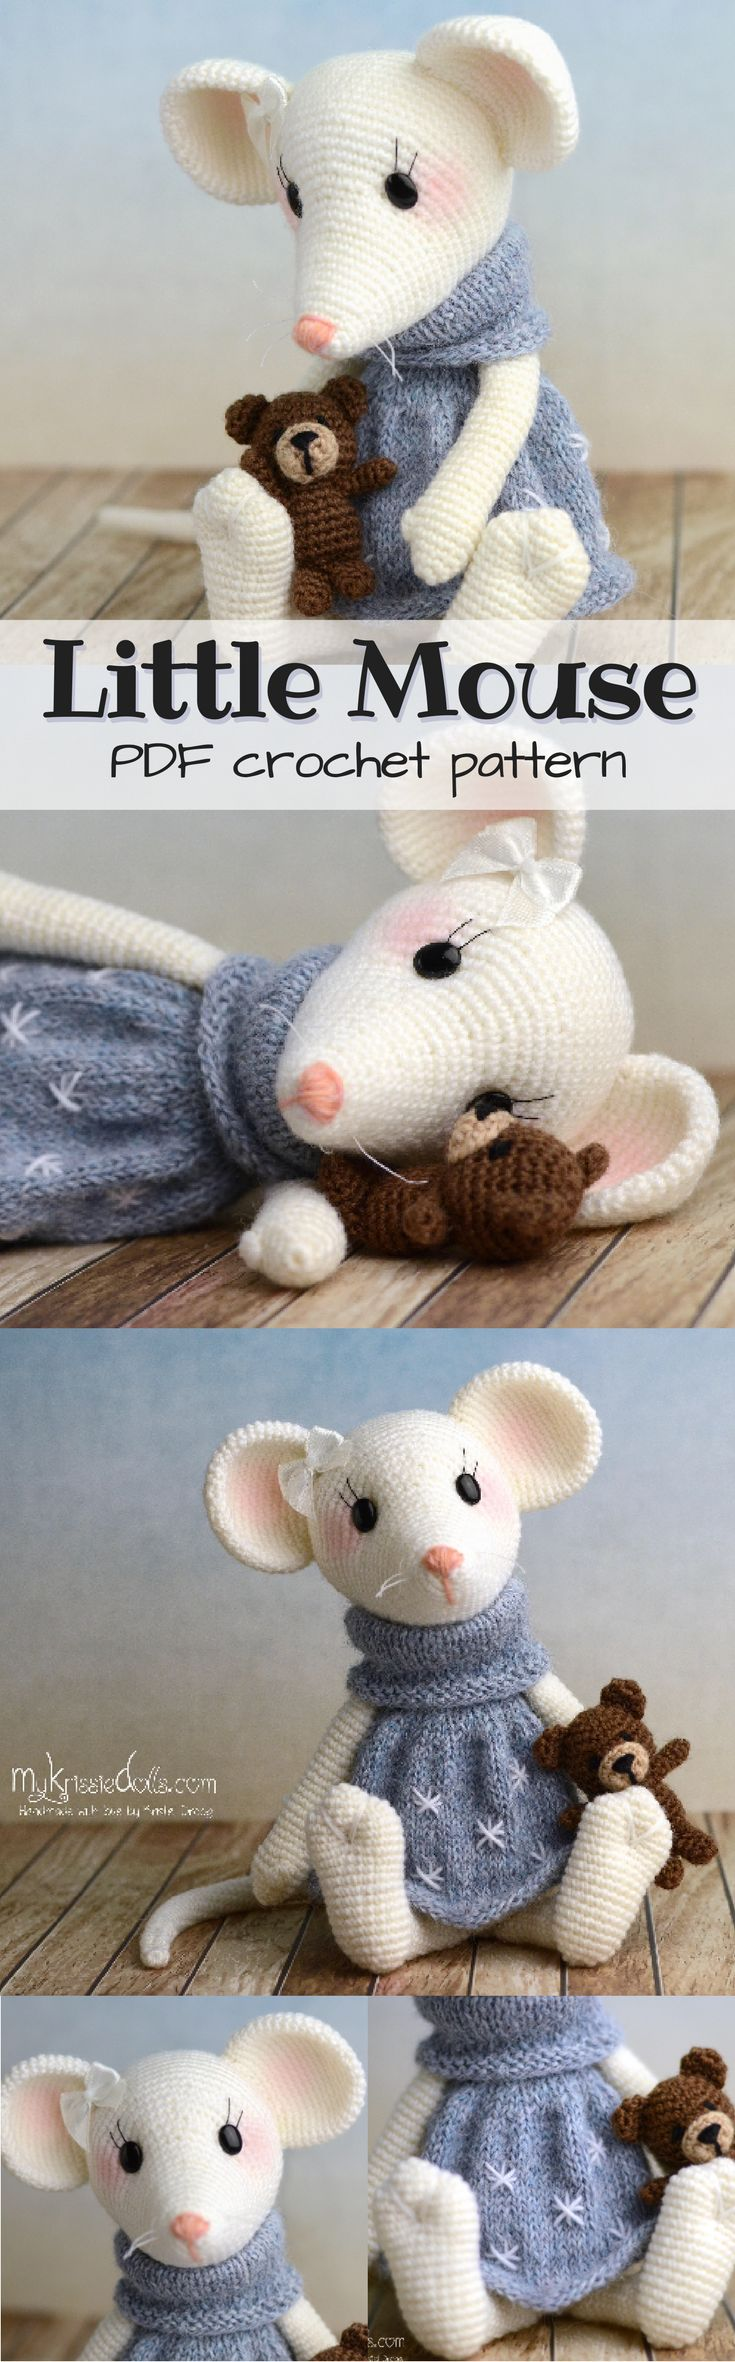 Adorable little mouse amigurumi toy crochet pattern to make for kids. Such a sweet little pattern to crochet. I love making little stuffed animals; they make the perfect handmade gift! #etsy #ad #pdf #instant #download #crochet #pattern #doll